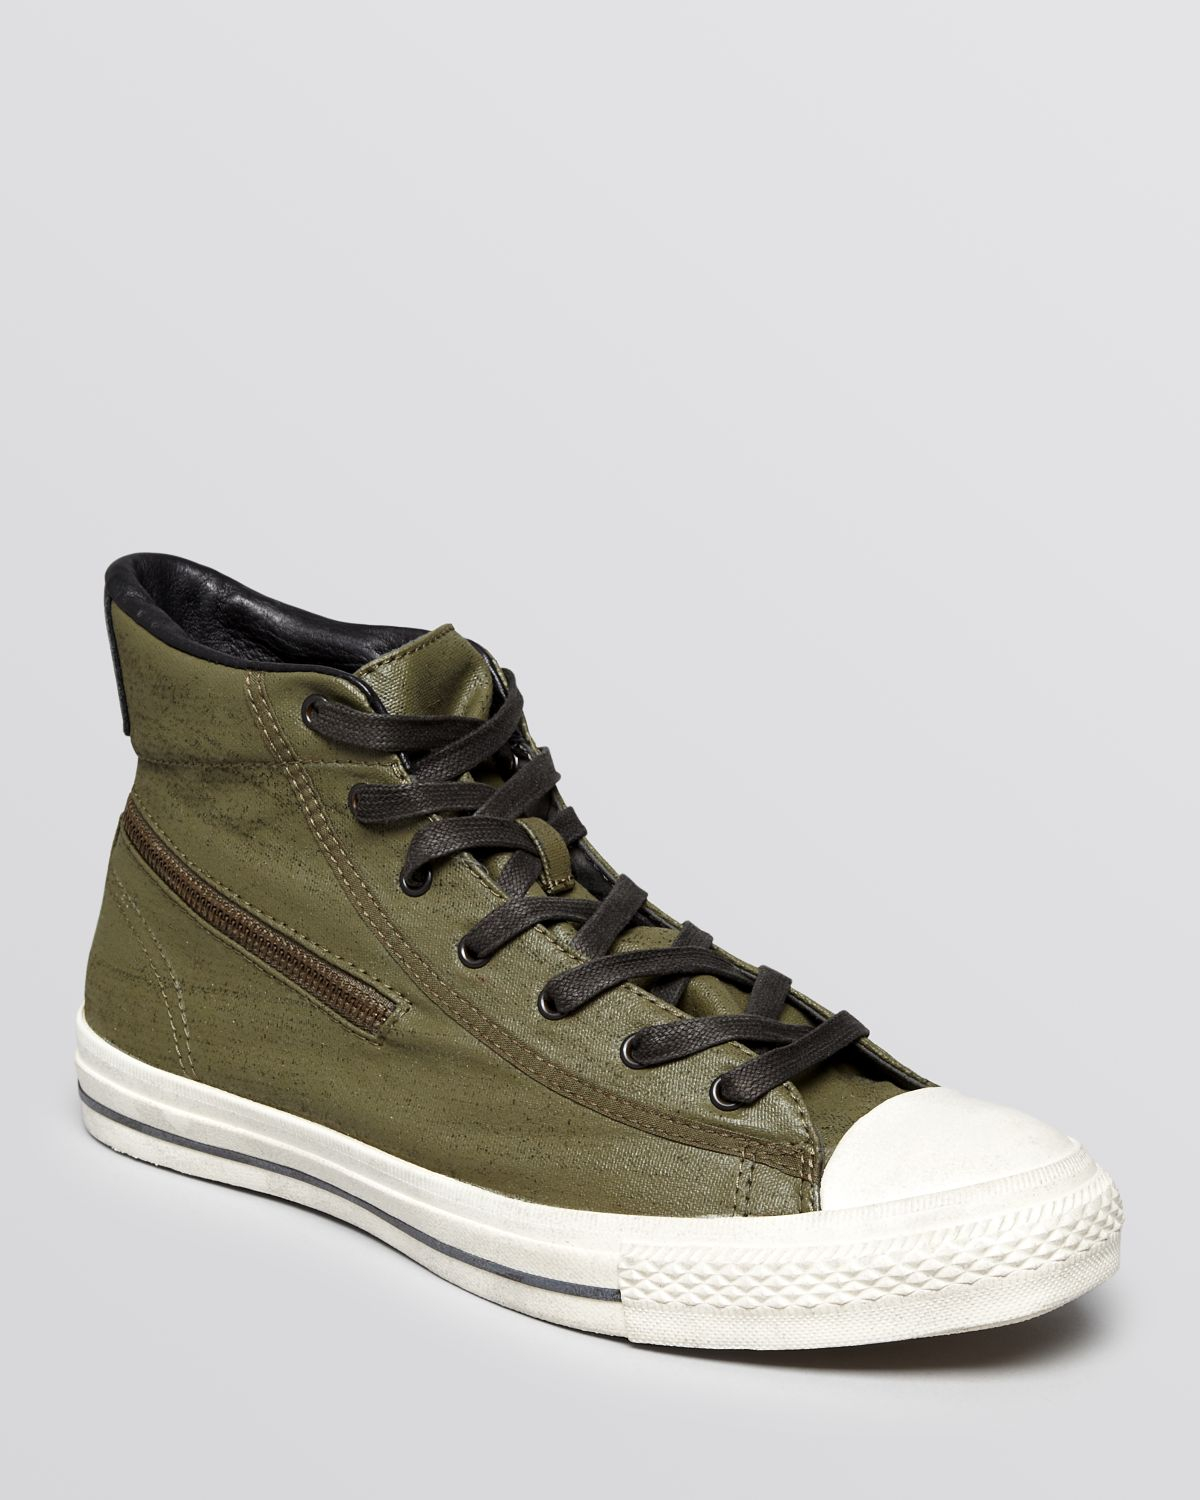 Lyst - Converse Chuck Taylor All Star Zip High Top Sneakers in Green ... 4199db539bb4